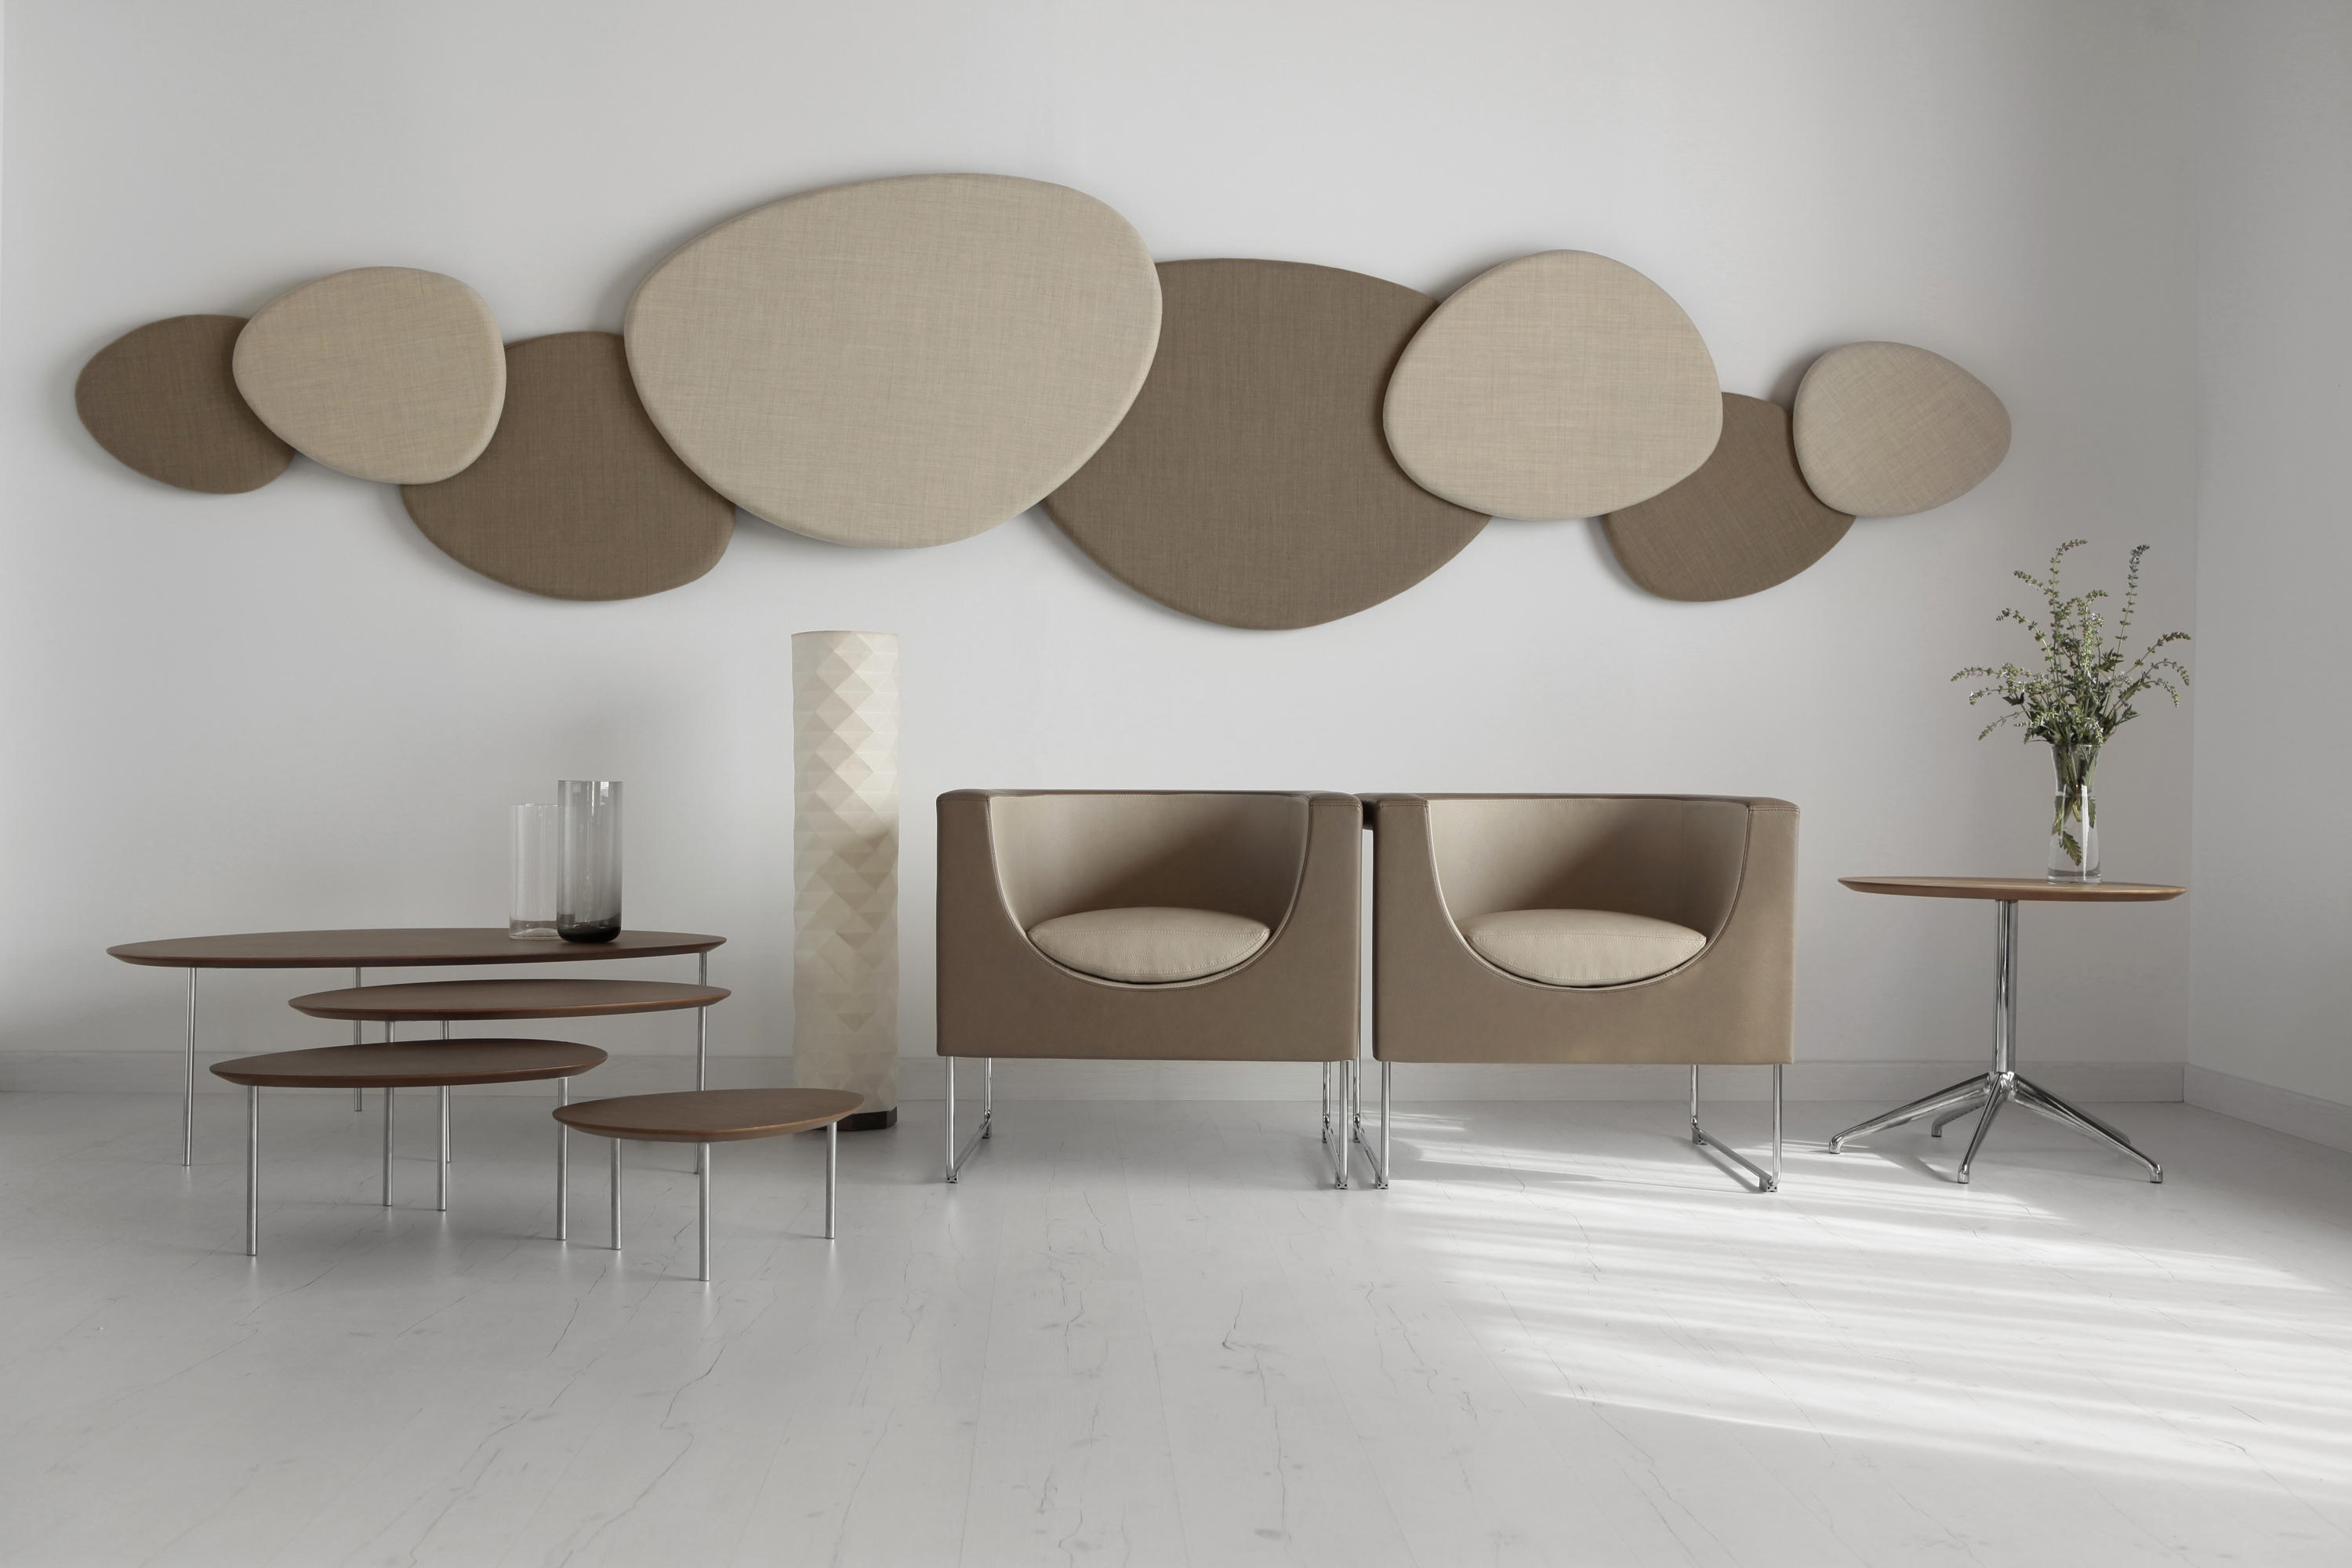 Akustikplatten Für Wände Satellite Acoustic Panel Wandpaneele Von Stua Architonic